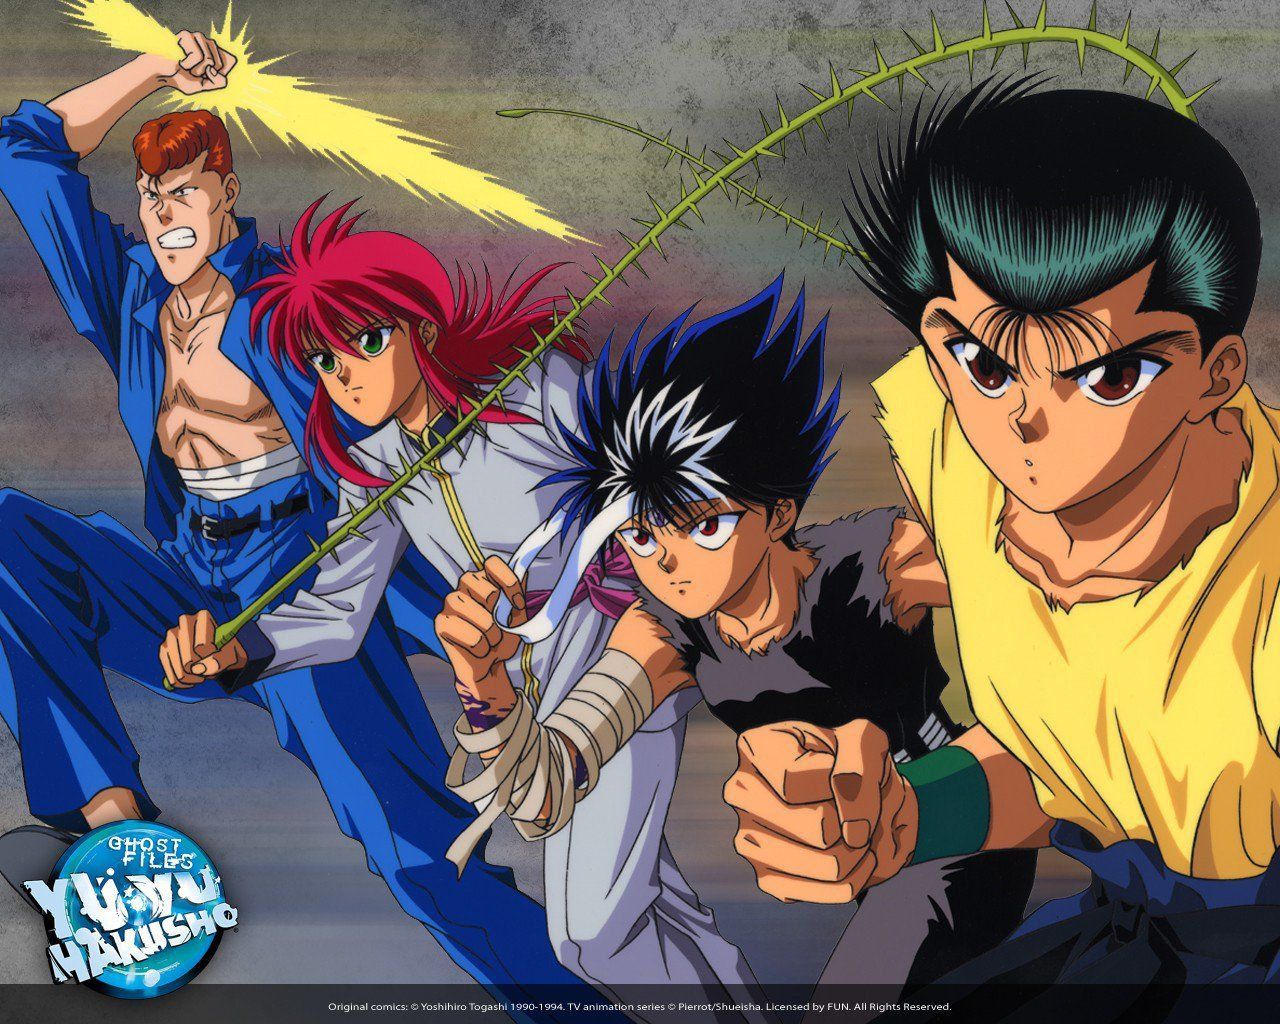 Fans Rank The Top 10 Old School Shounen Anime They Want To See A